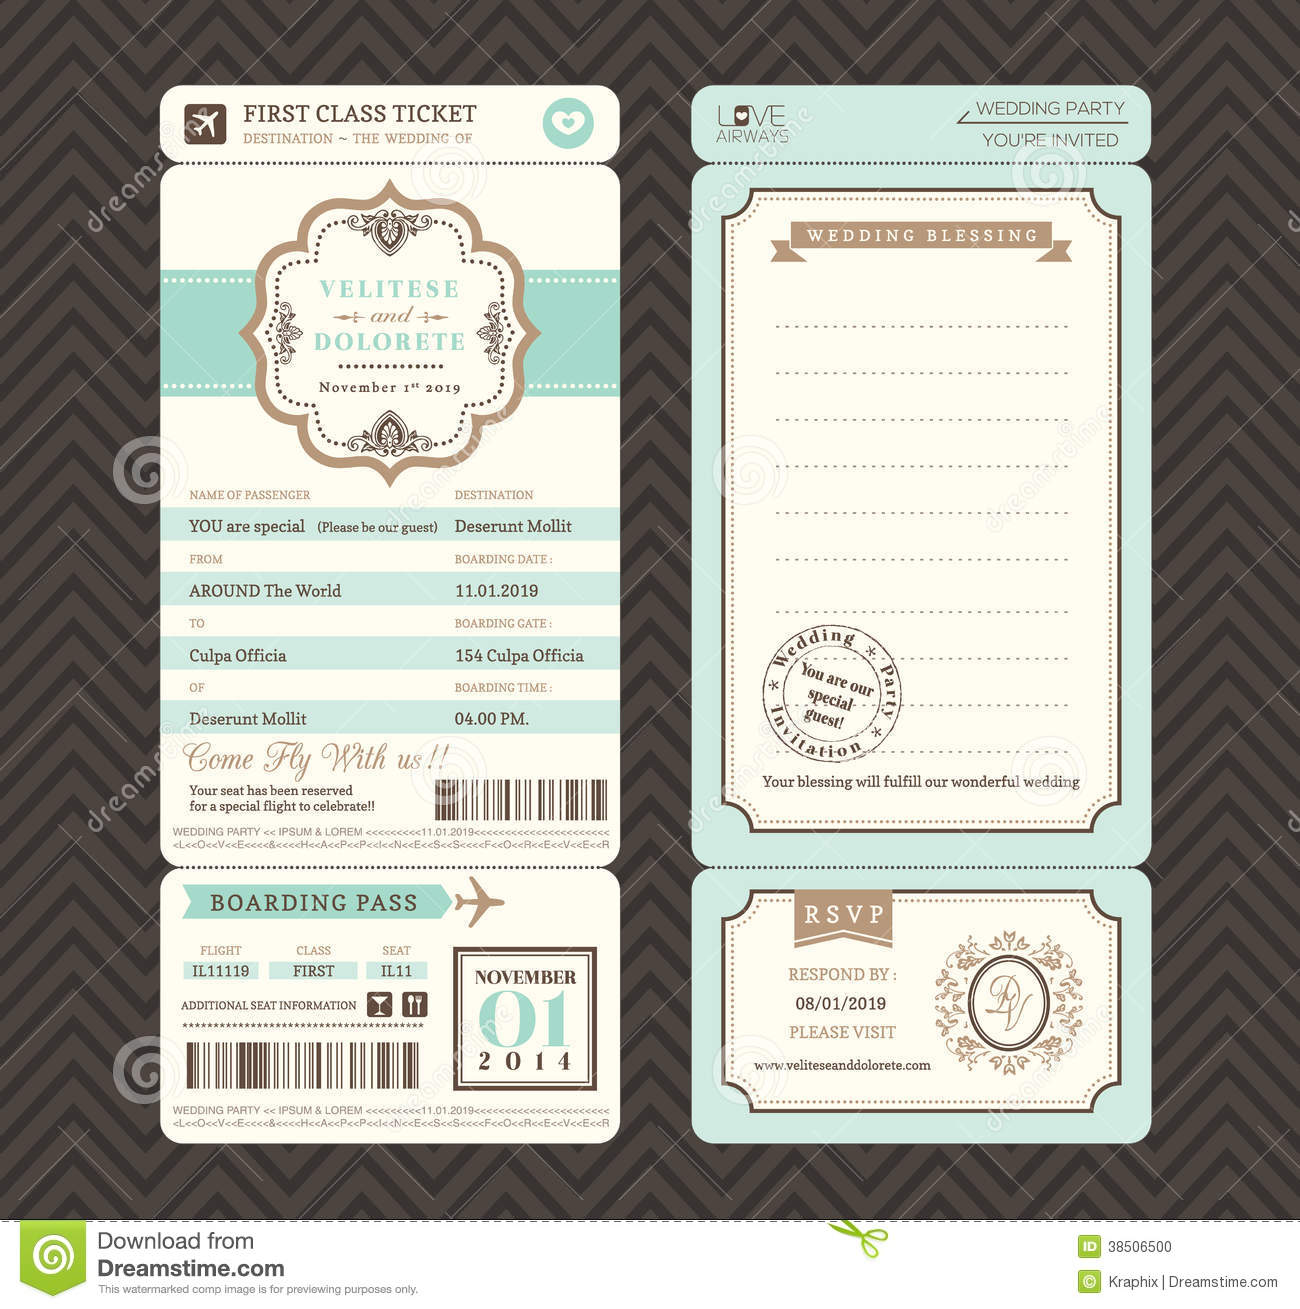 Vintage Style Boarding Pass Ticket Wedding Invitation Template